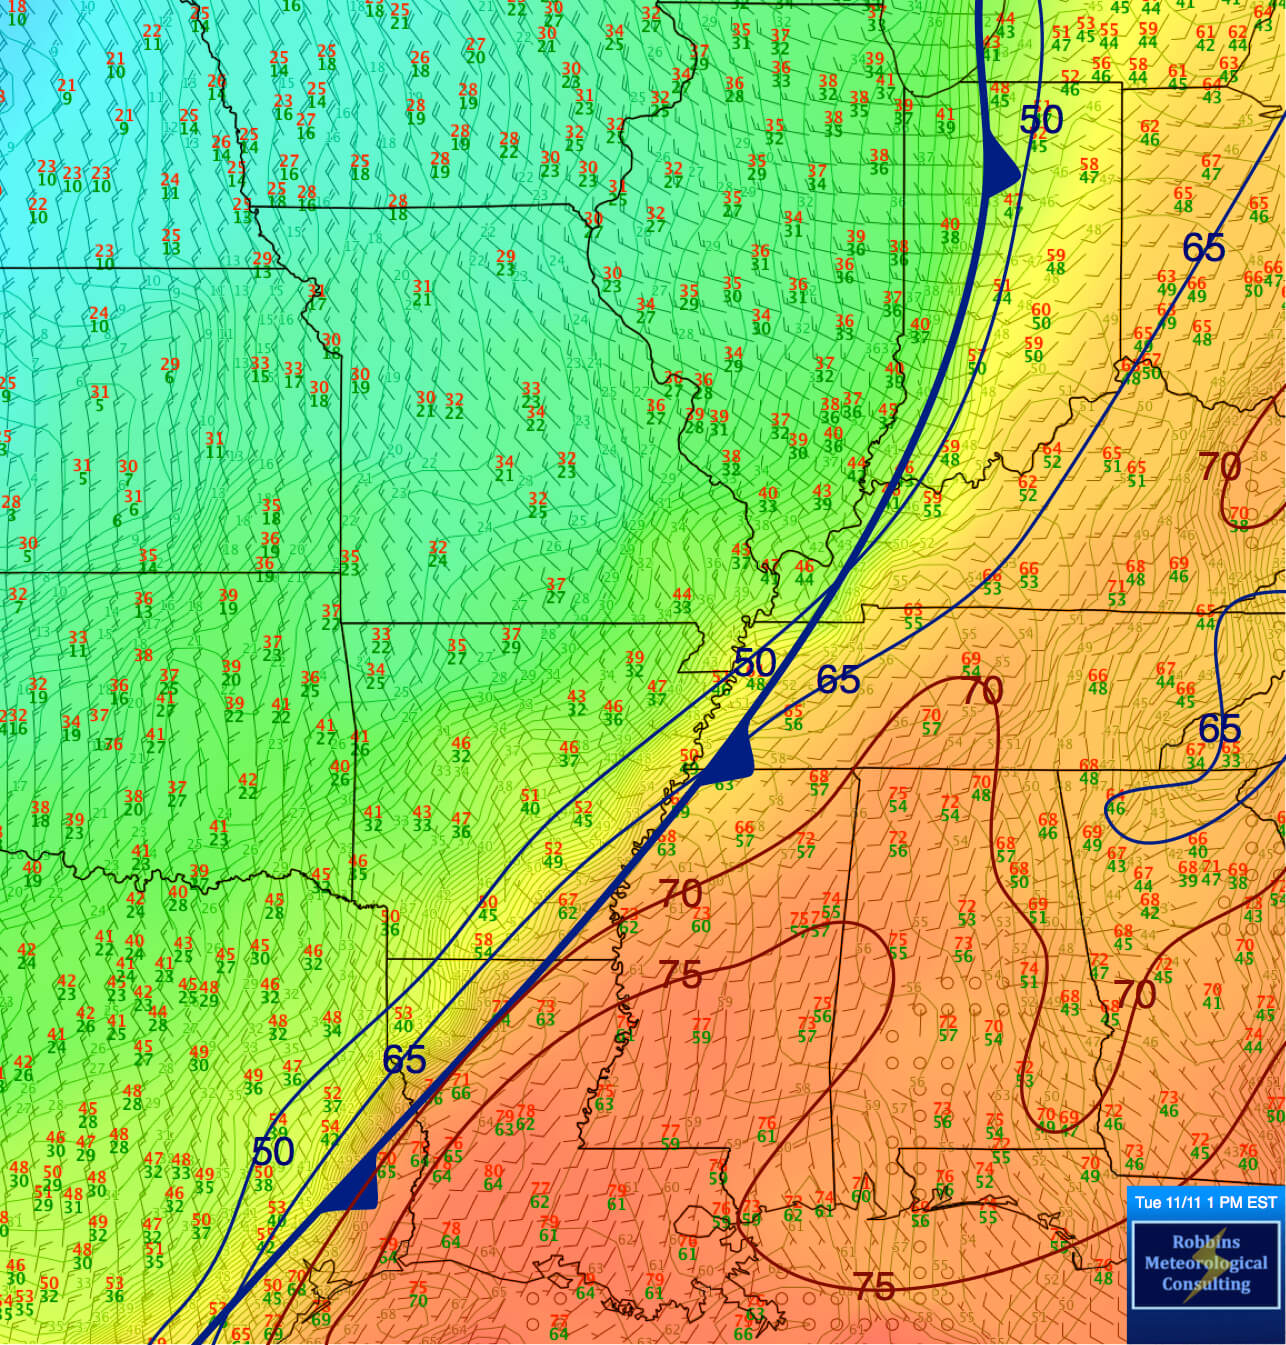 Surface analysis showing the position of the Arctic Front at 1:45 pm EST Tuesday, November 11